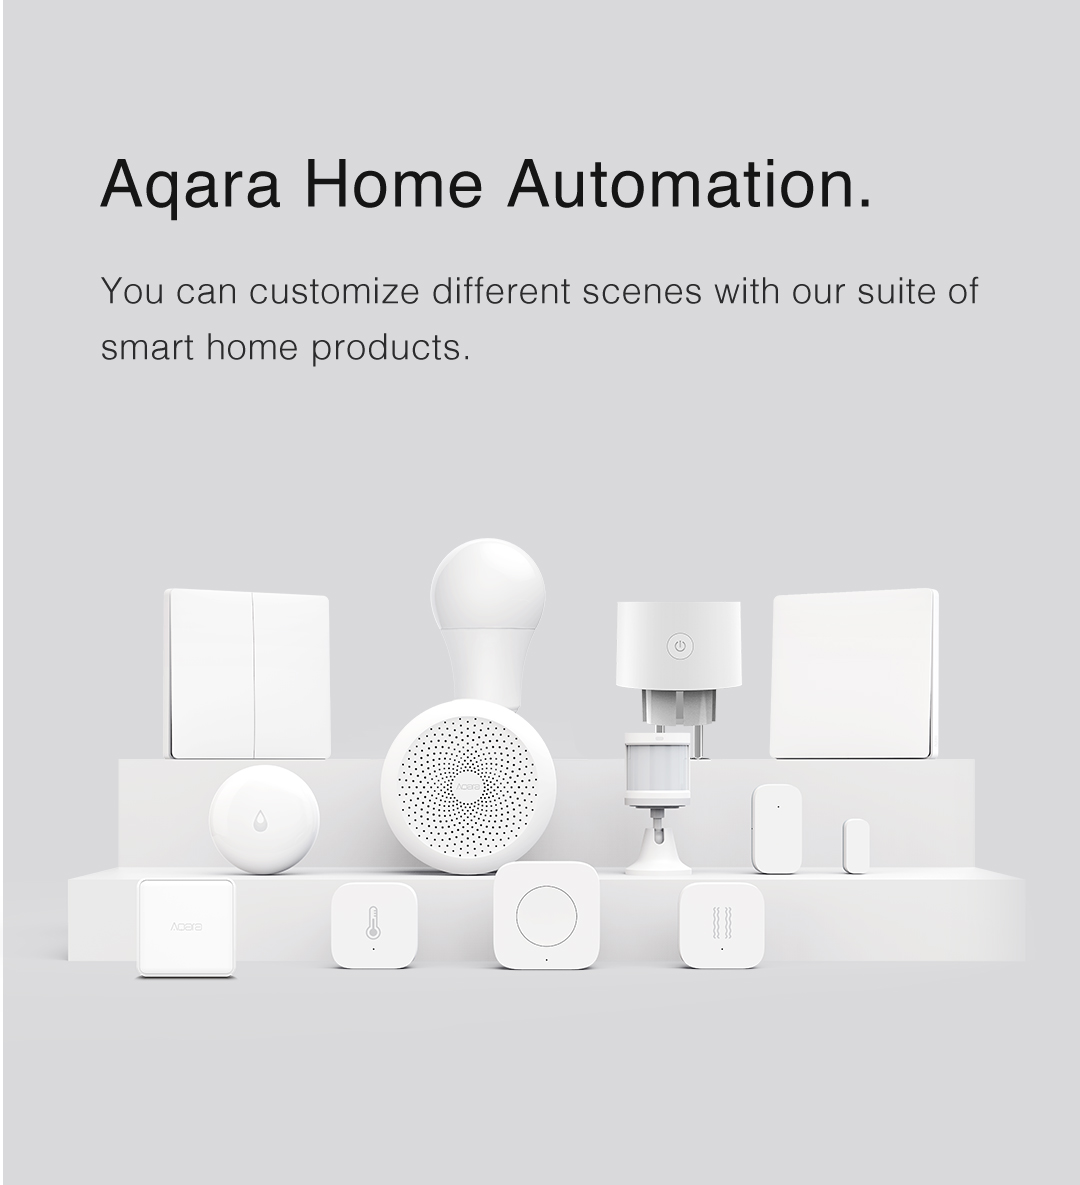 Porfolio of smart home system and devices